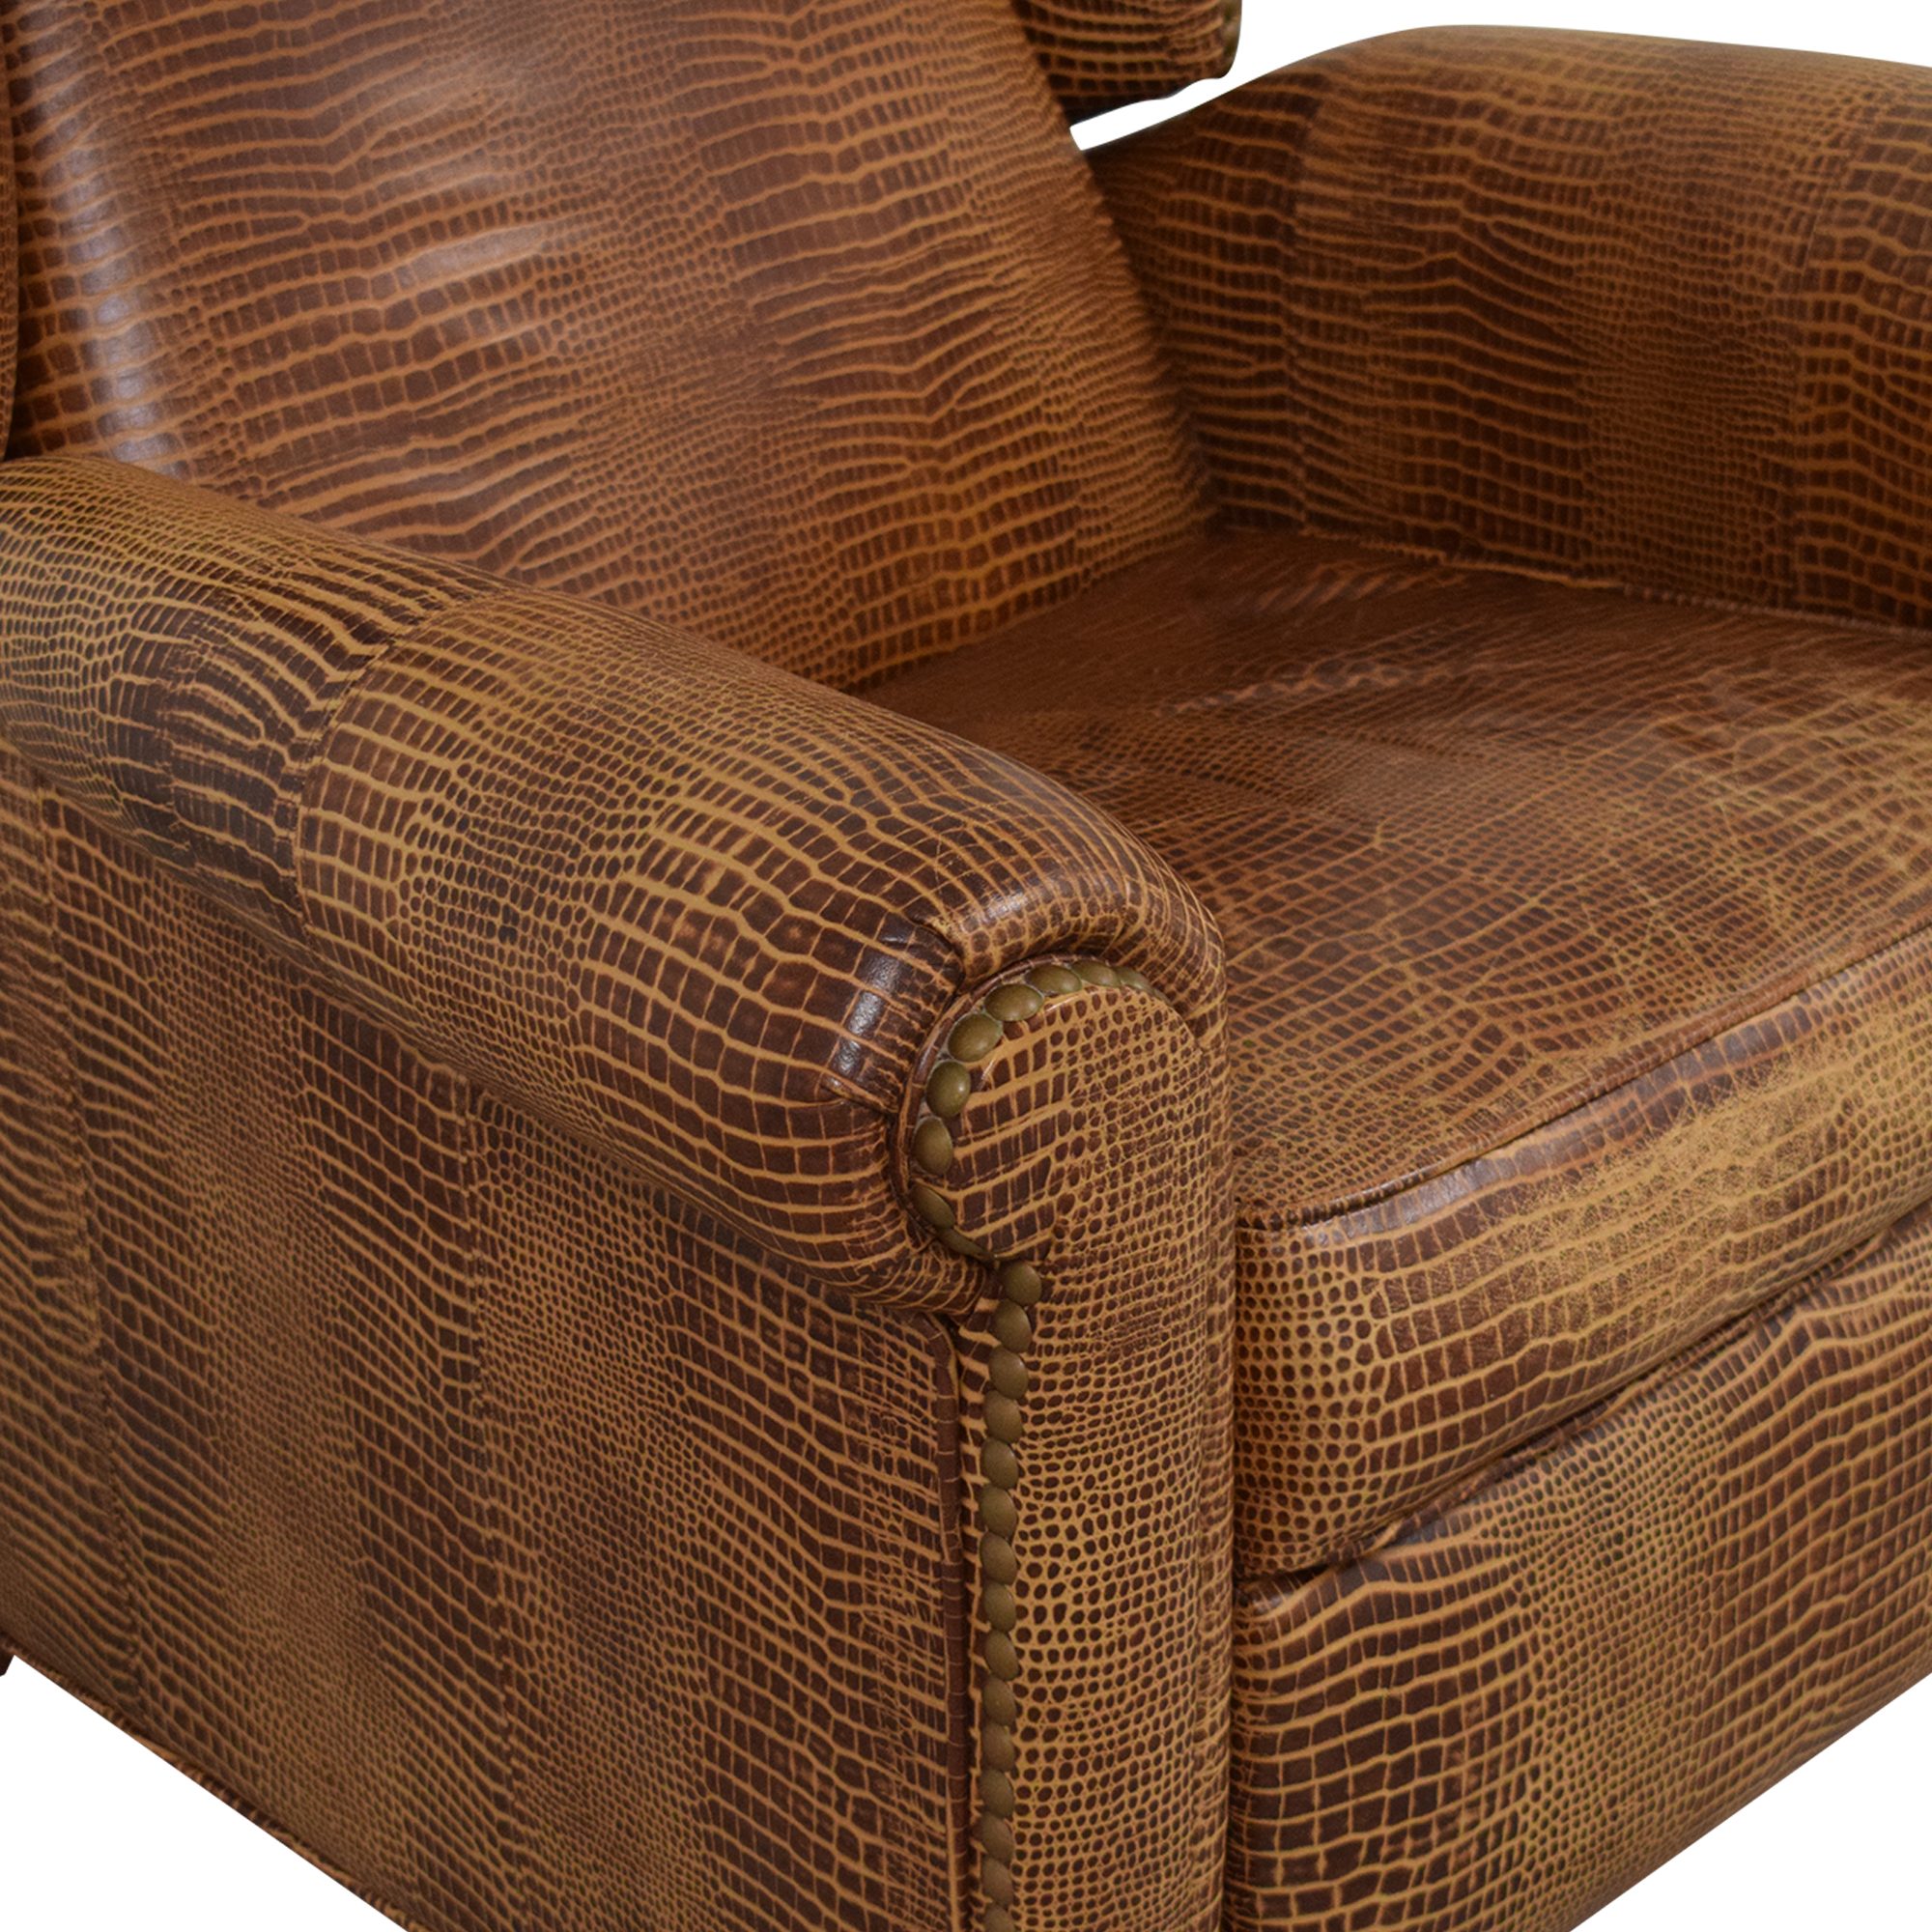 Ethan Allen Studded Wingback Recliner / Chairs